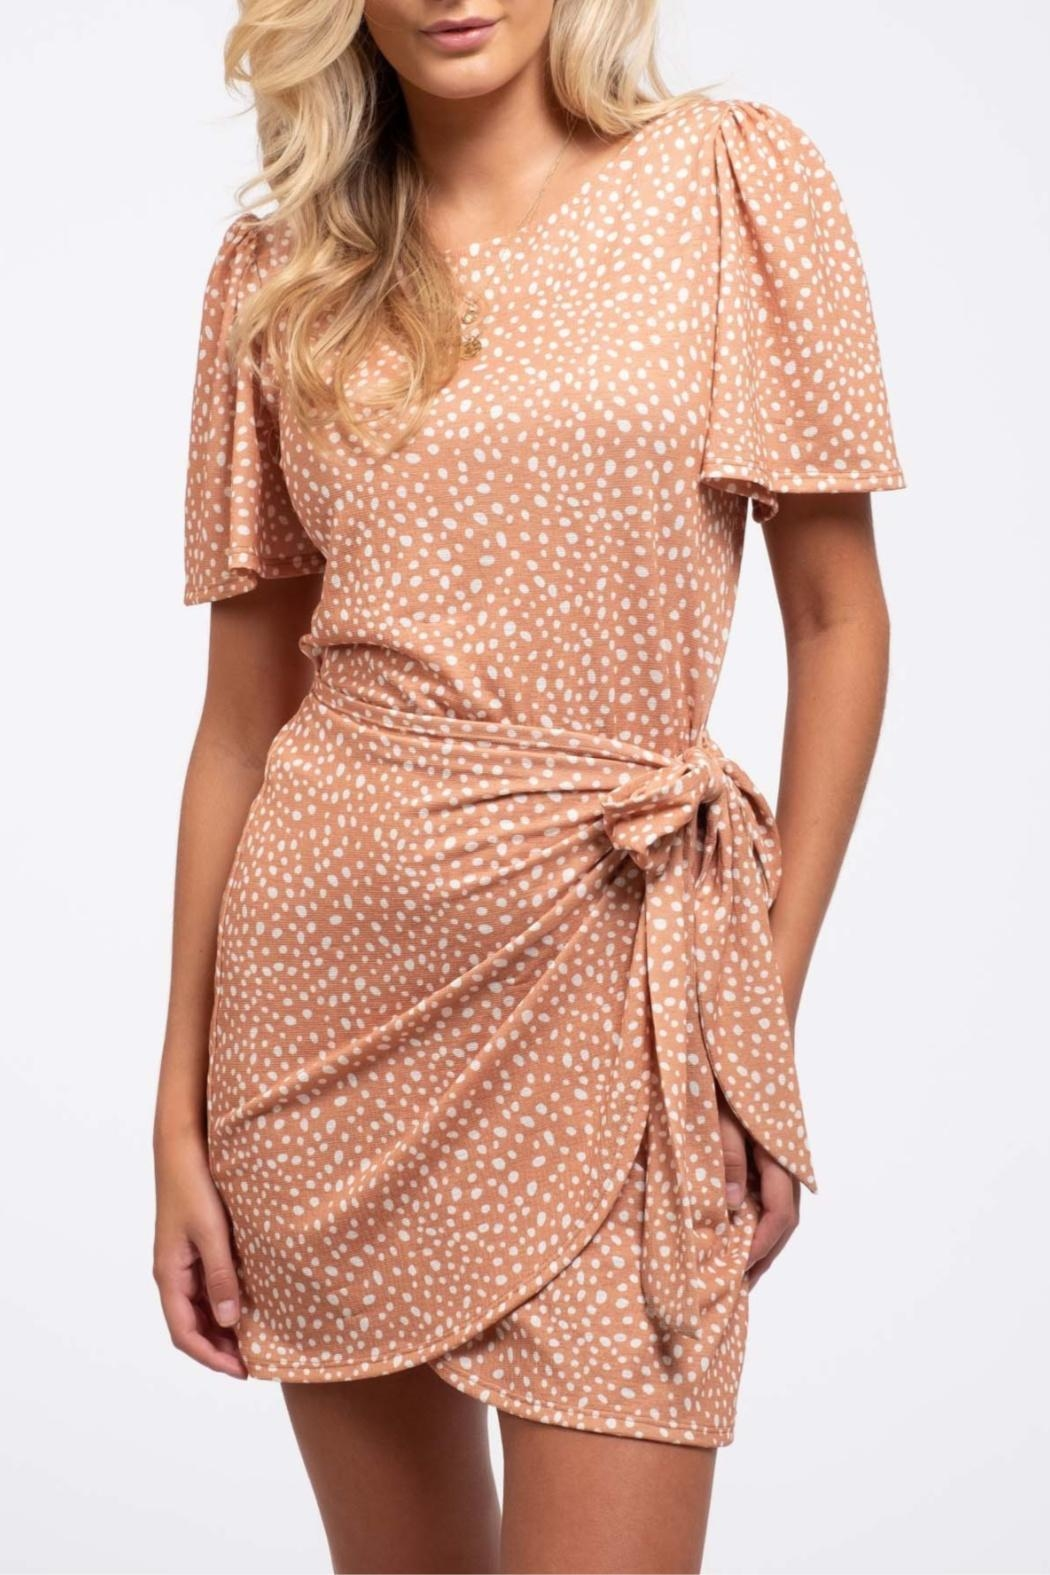 Blu Pepper Wrapped-In-Dots Dress - Main Image